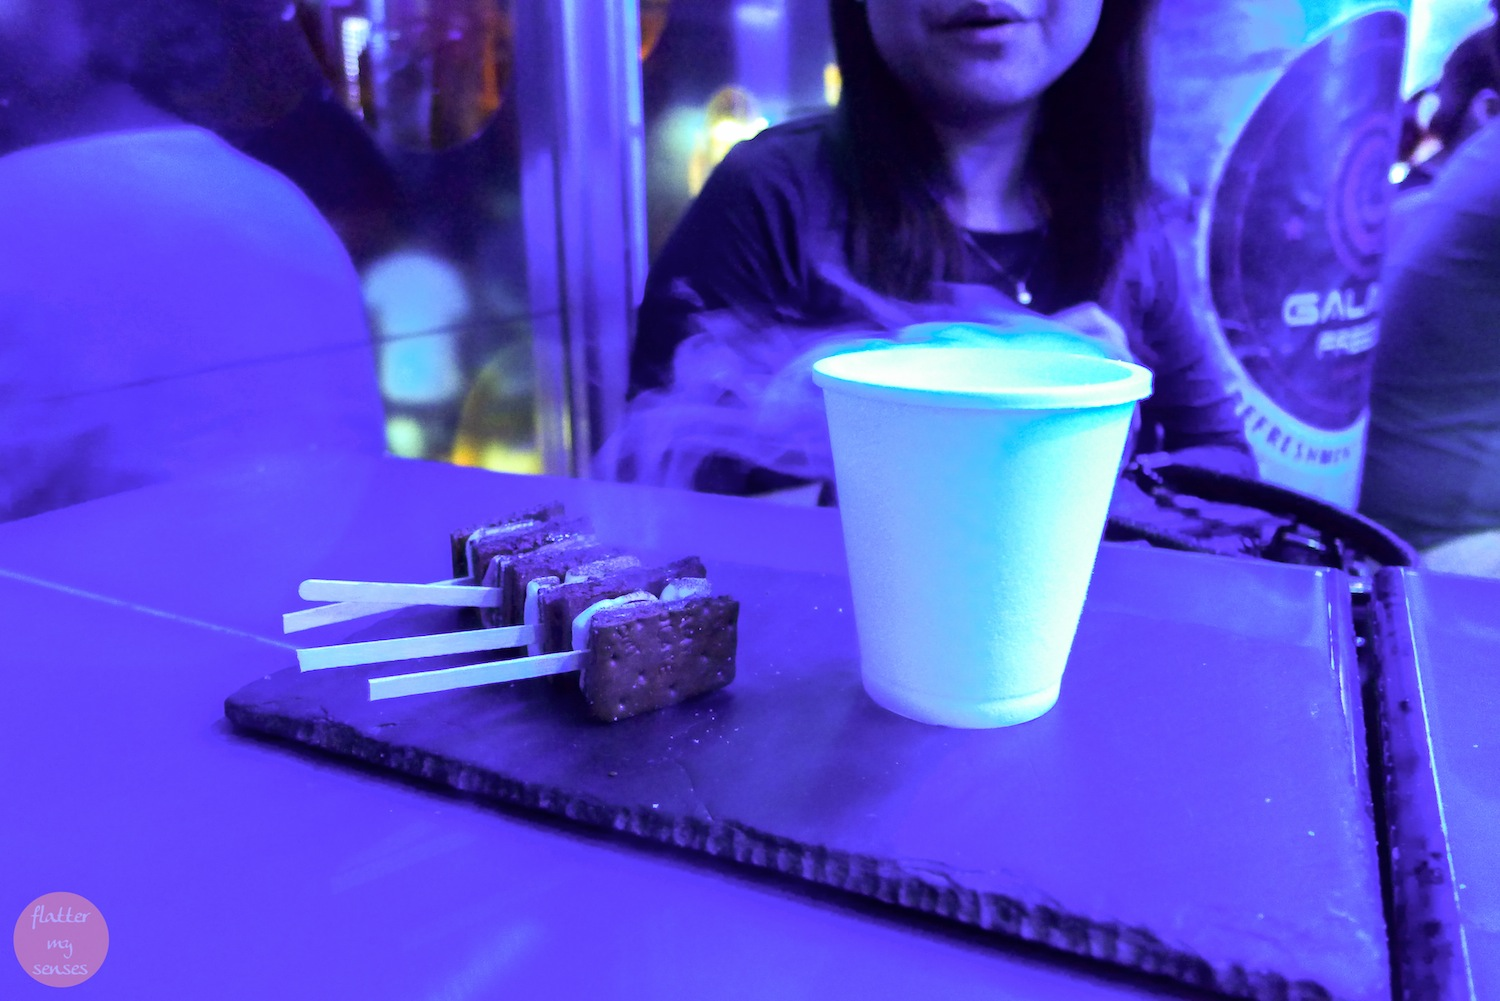 4 pieces ofSmores (Php 68) accompanied by a smokey glass of Liquid Nitrogen